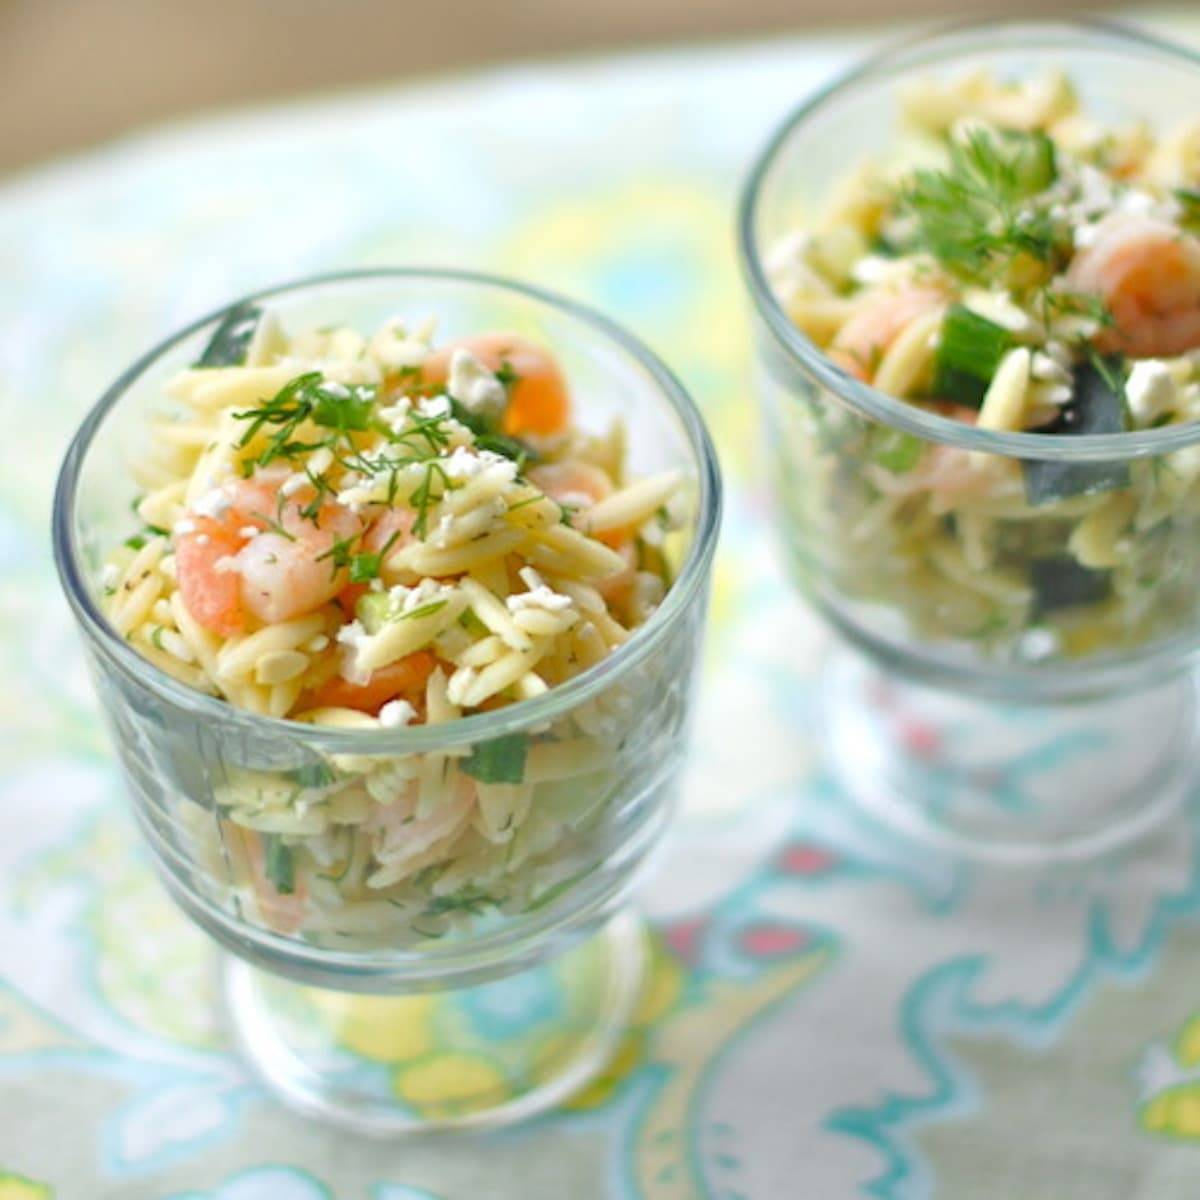 Shrimp and feta orzo in two dishes.